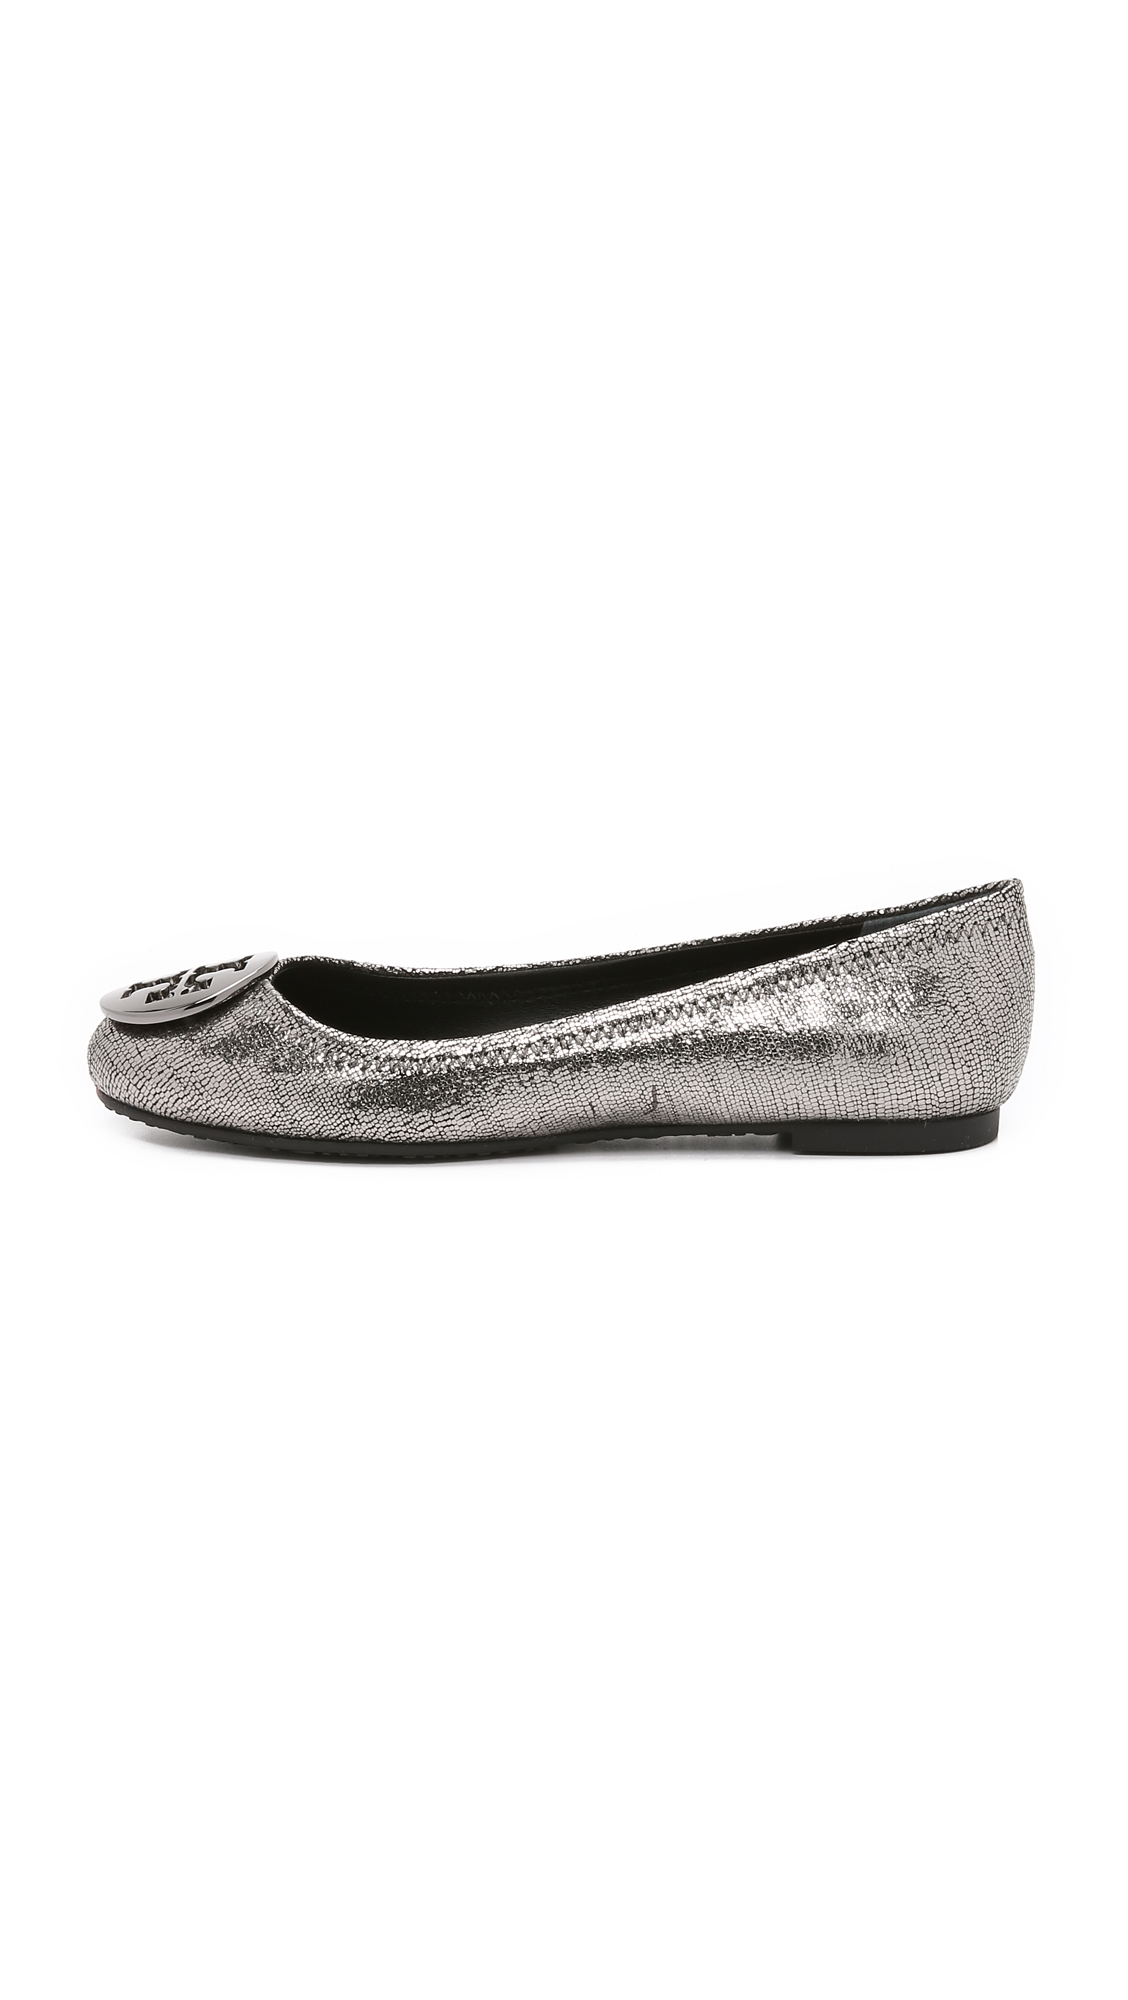 Tory Burch Foiled Leather Flats discount for sale sale shopping online outlet lowest price 1TsYCgE